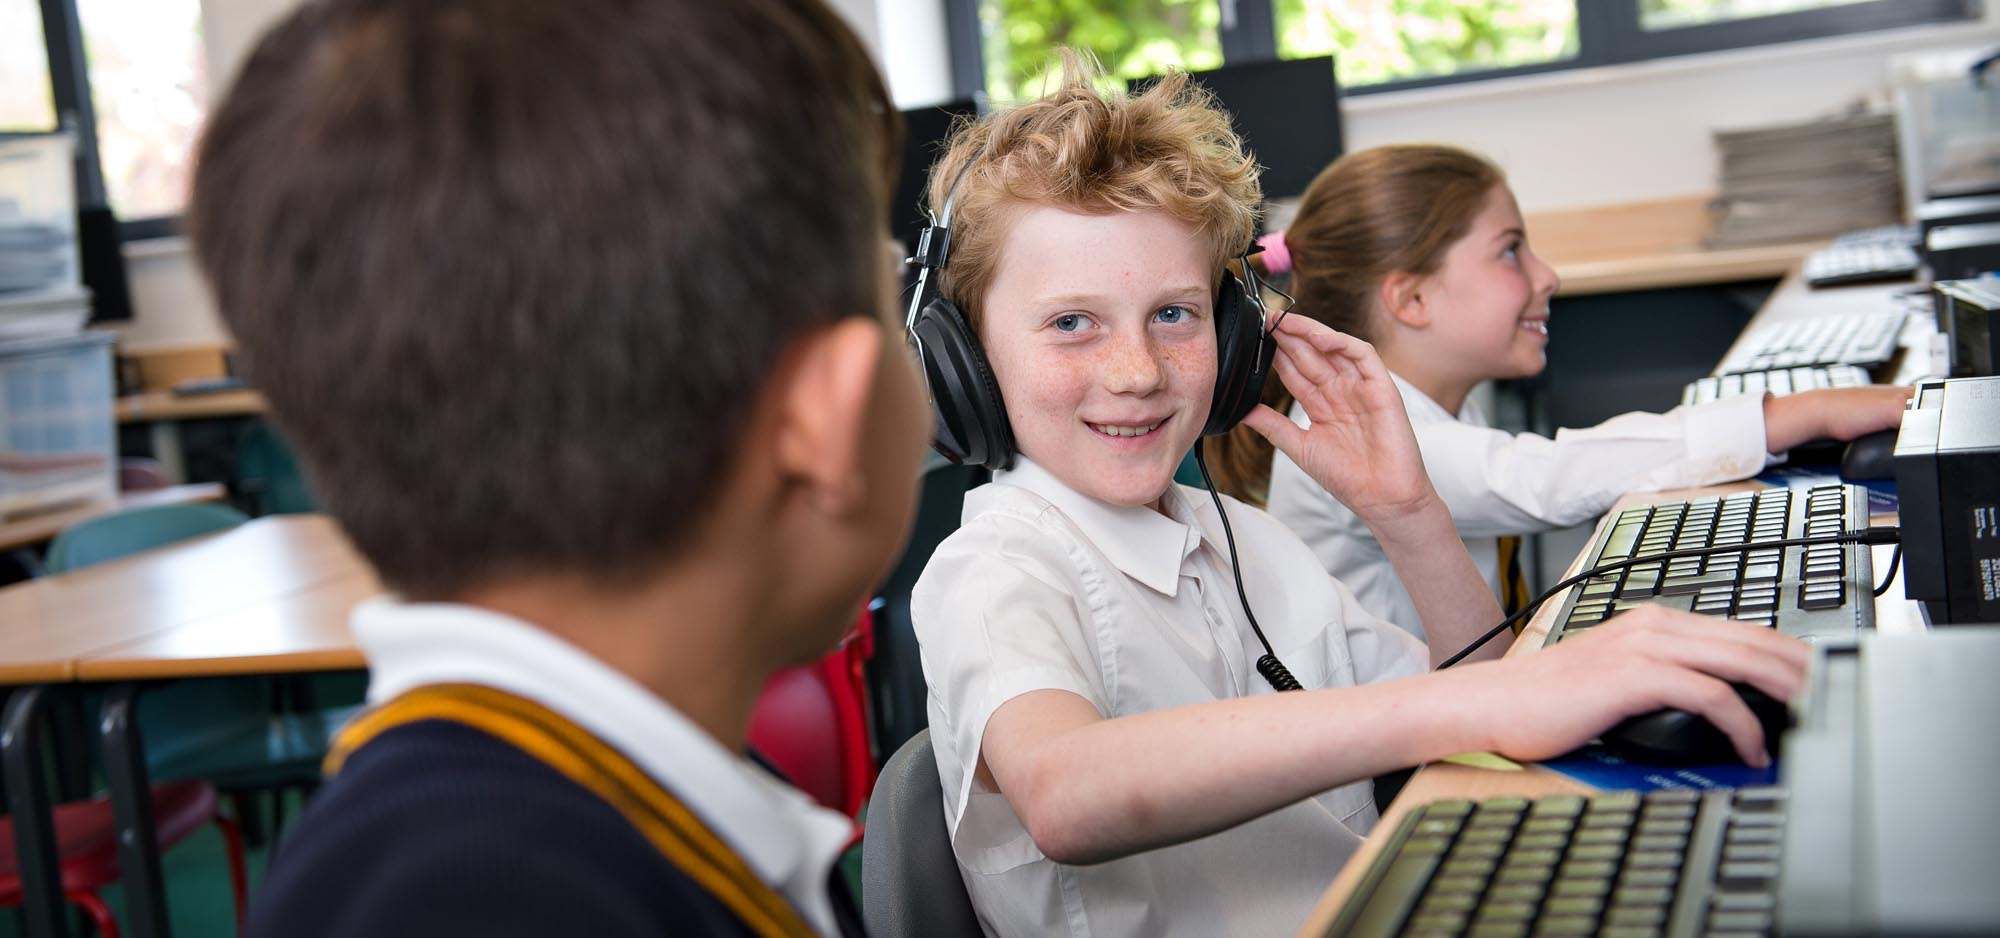 Boy with headphones by computer